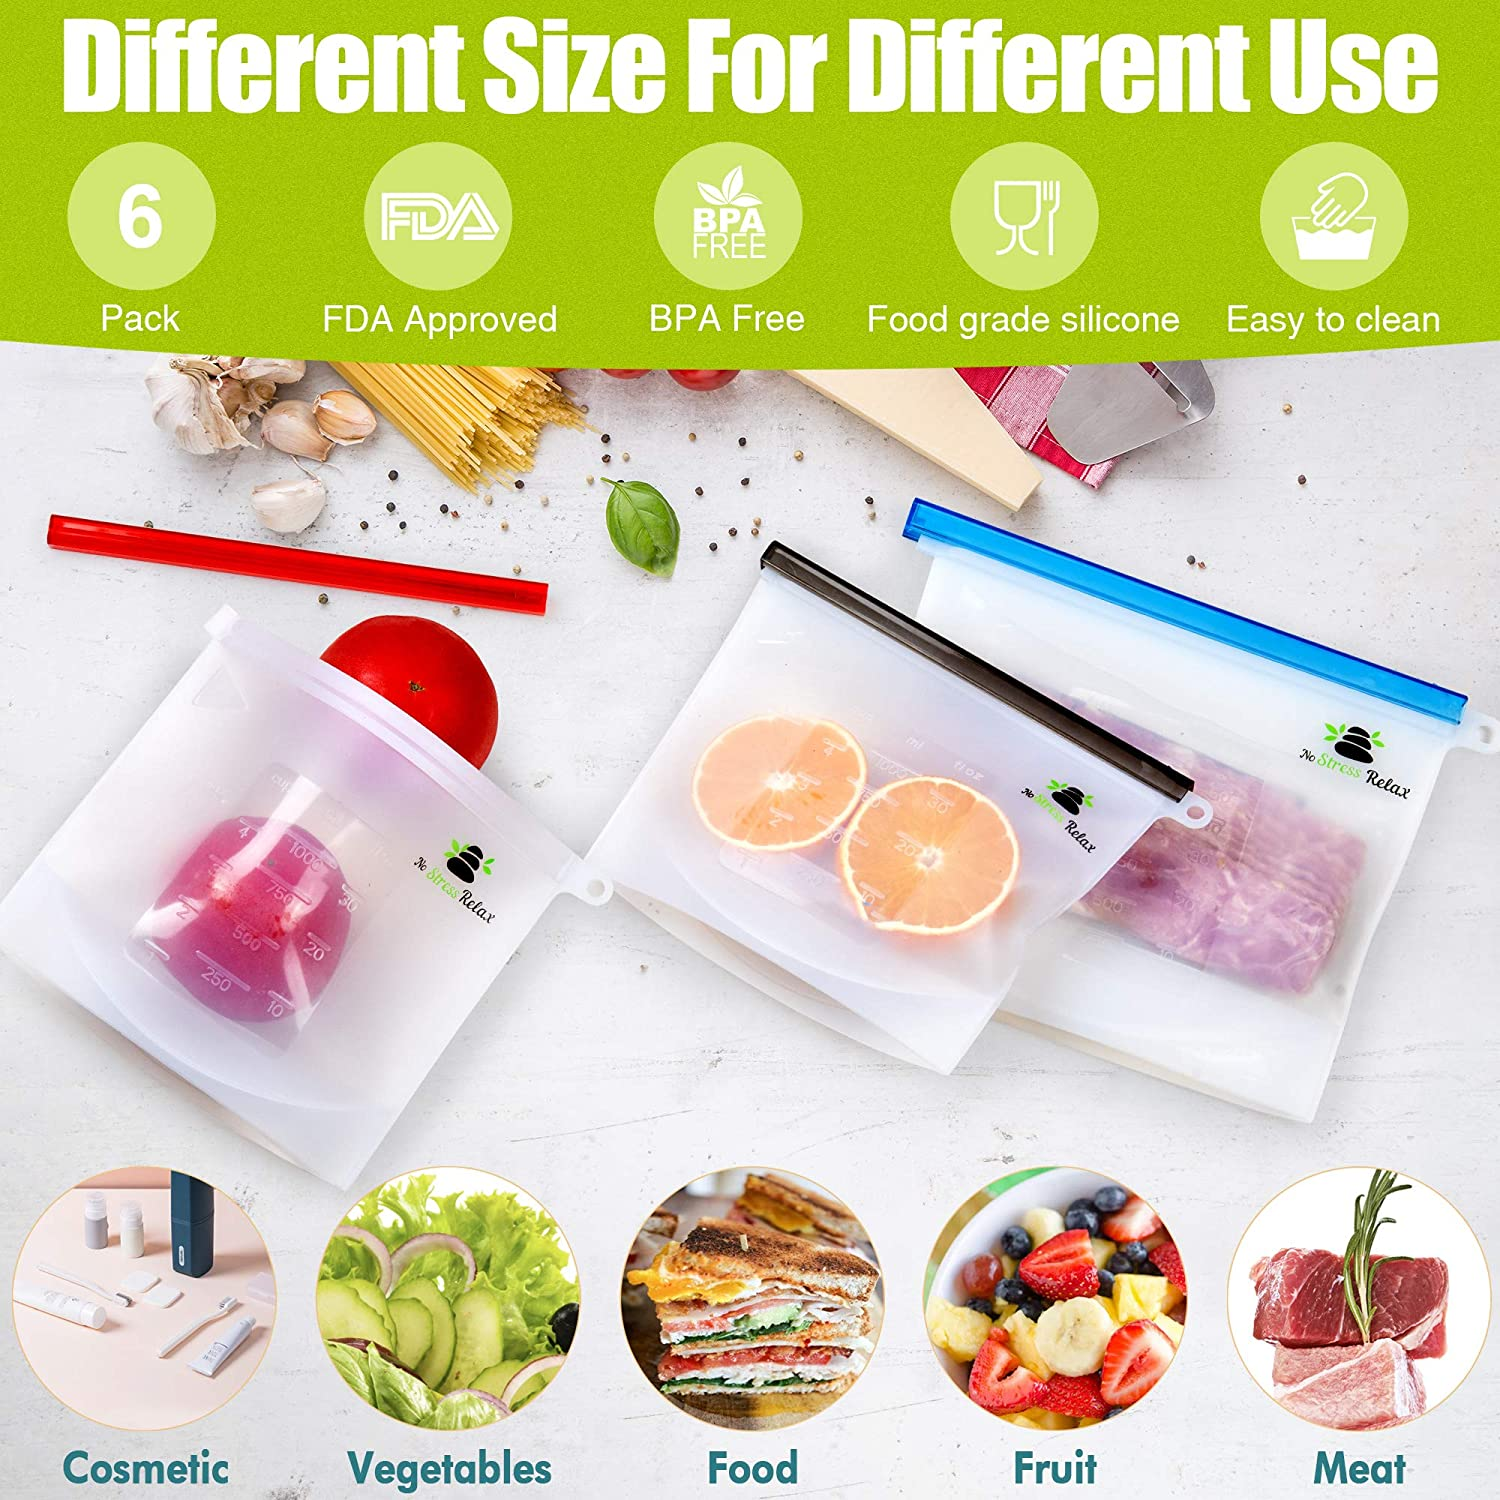 Convenient sizes to store and use for variety of things